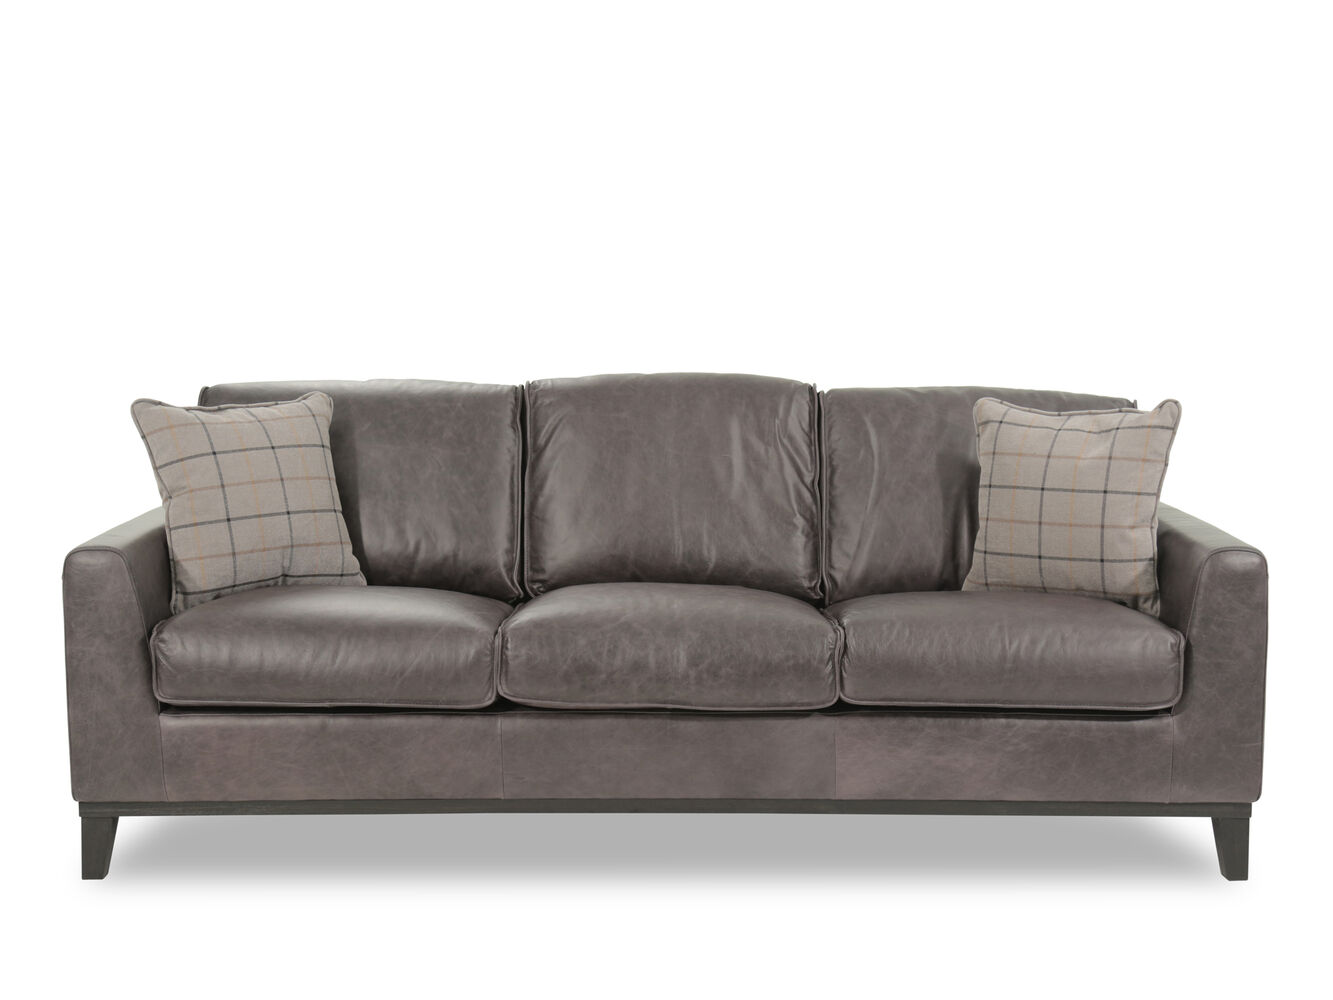 Casual leather sofa in gray mathis brothers furniture for Casual couch